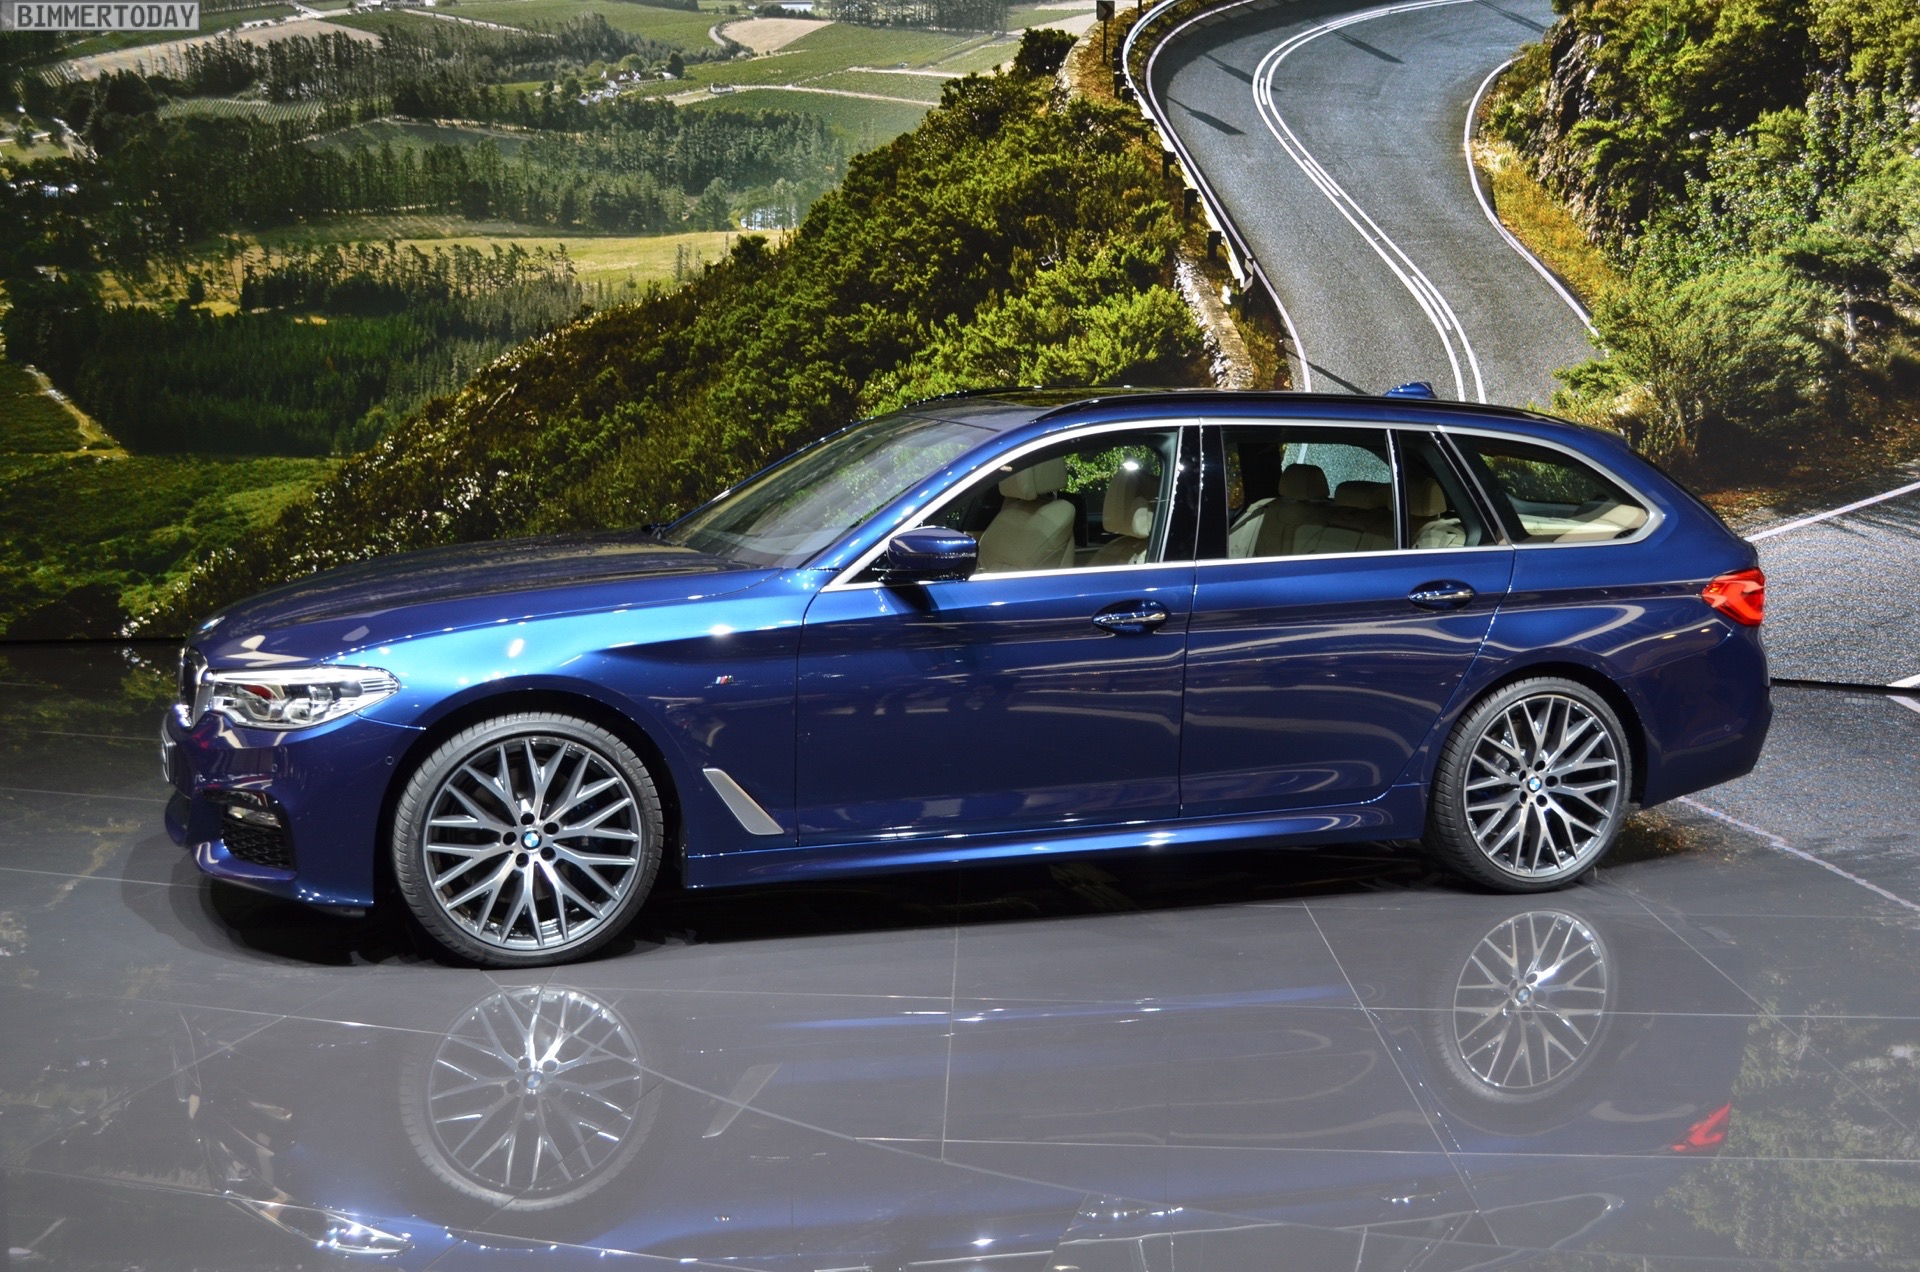 New Photos Of The 2017 Bmw 530d Touring With M Sport Package